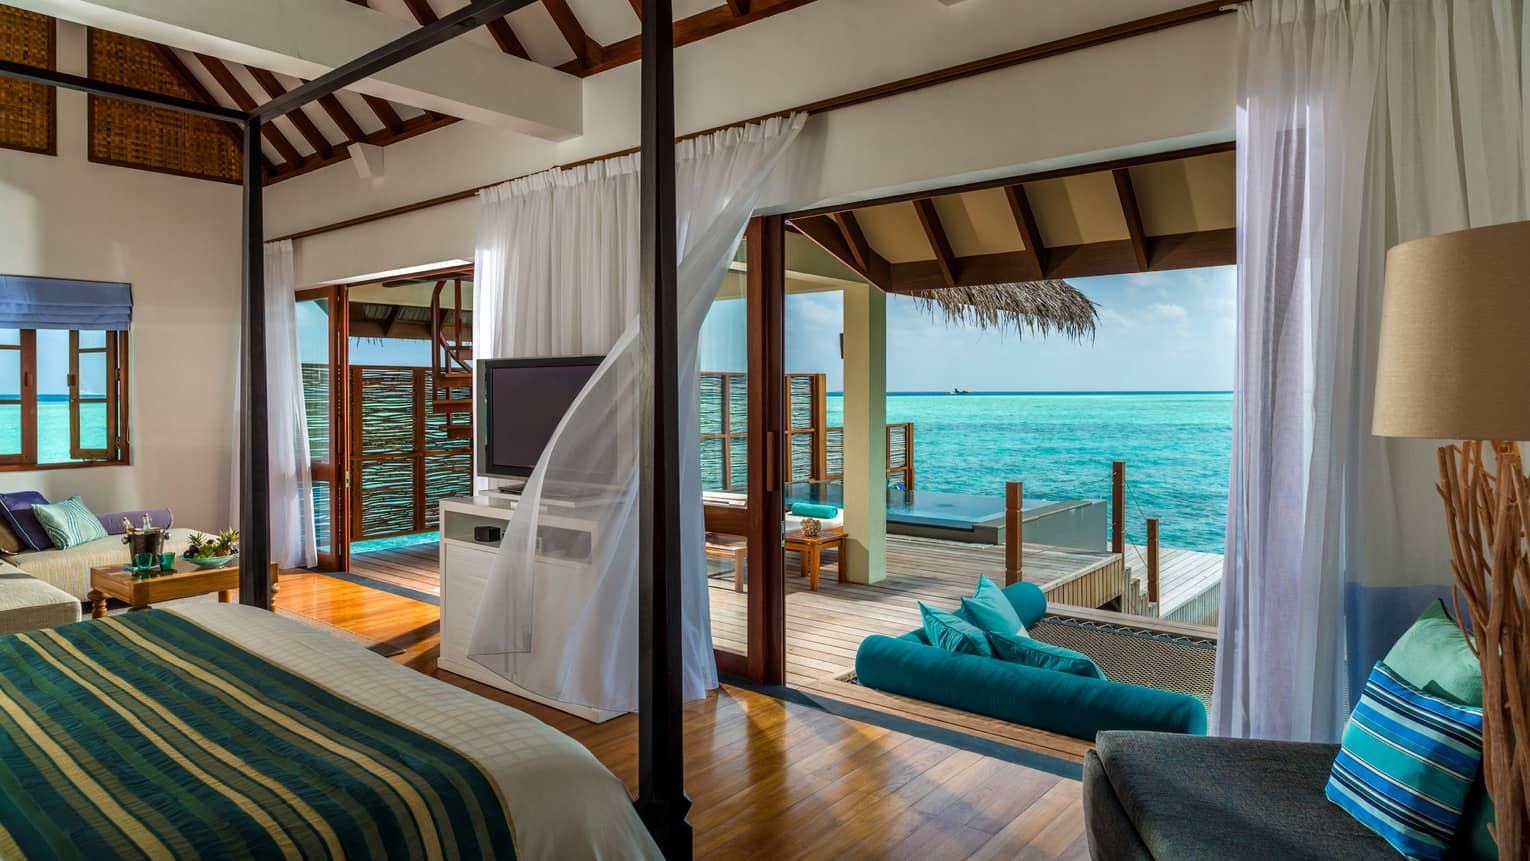 Sunrise Water Villa with Pool poster bed across from open wall to patio, sheer curtains in breeze